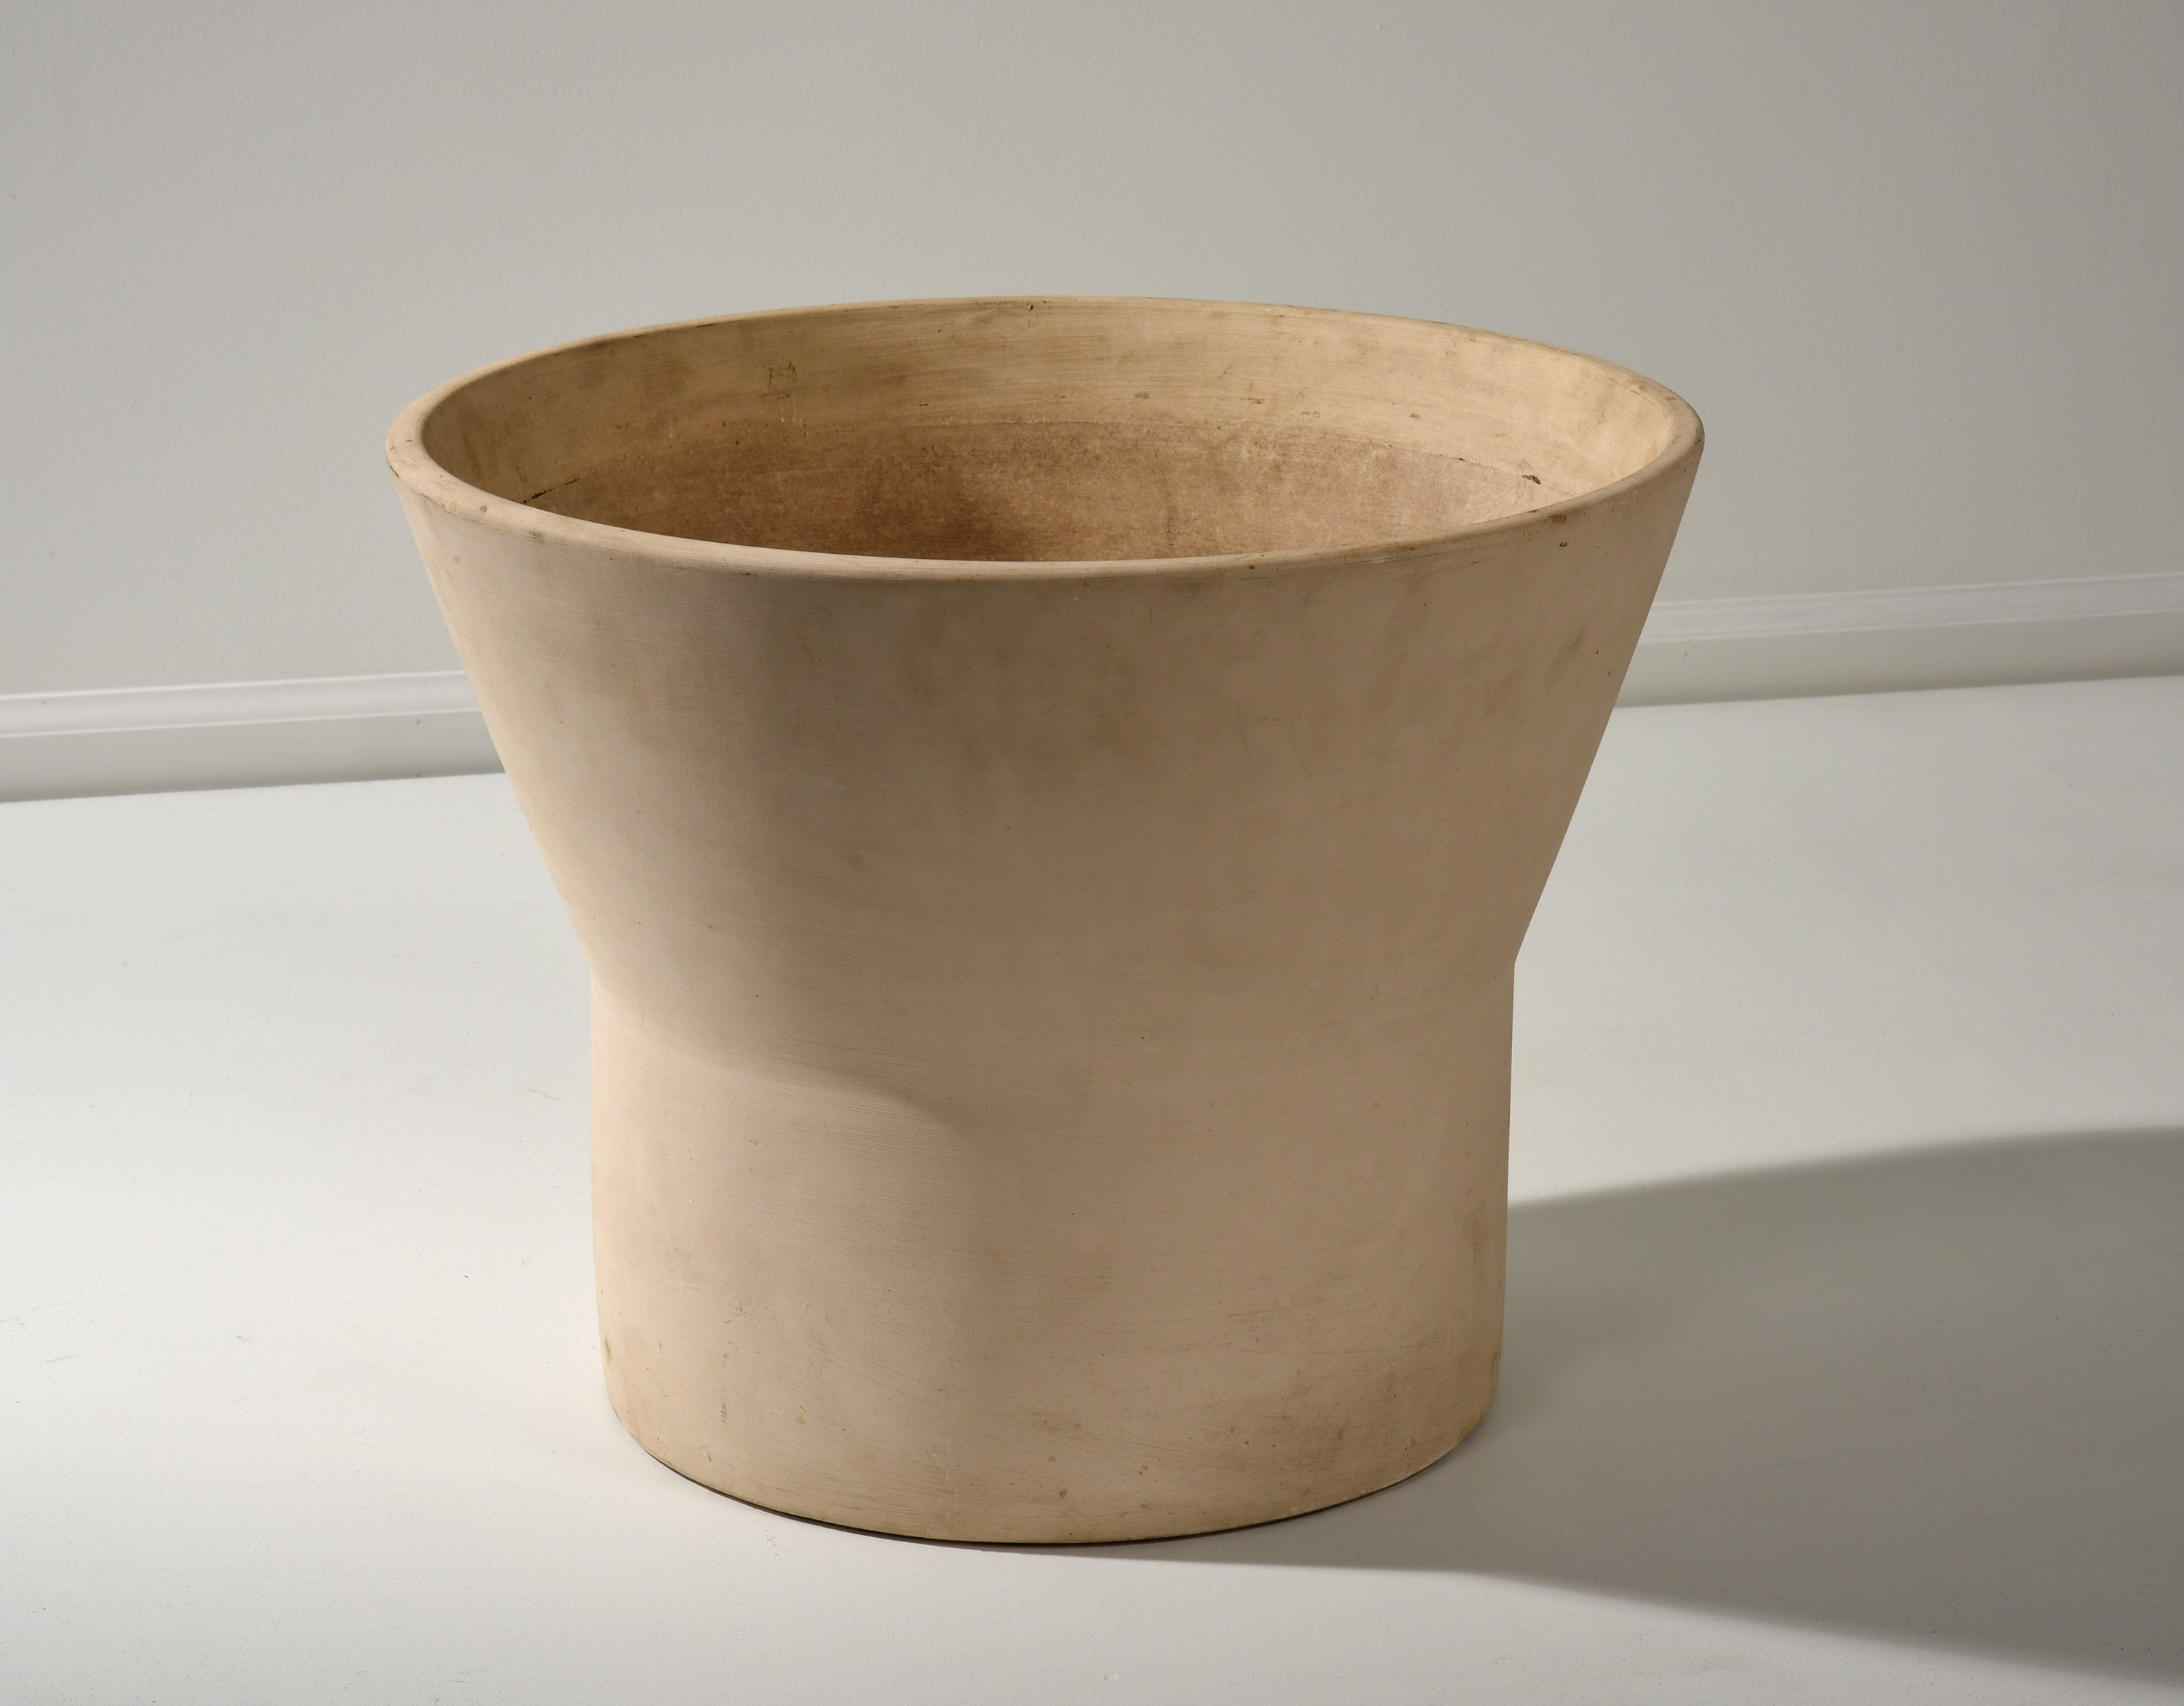 Planter by Paul McCobb for Architectural Pottery, 1960s - The Exchange Int